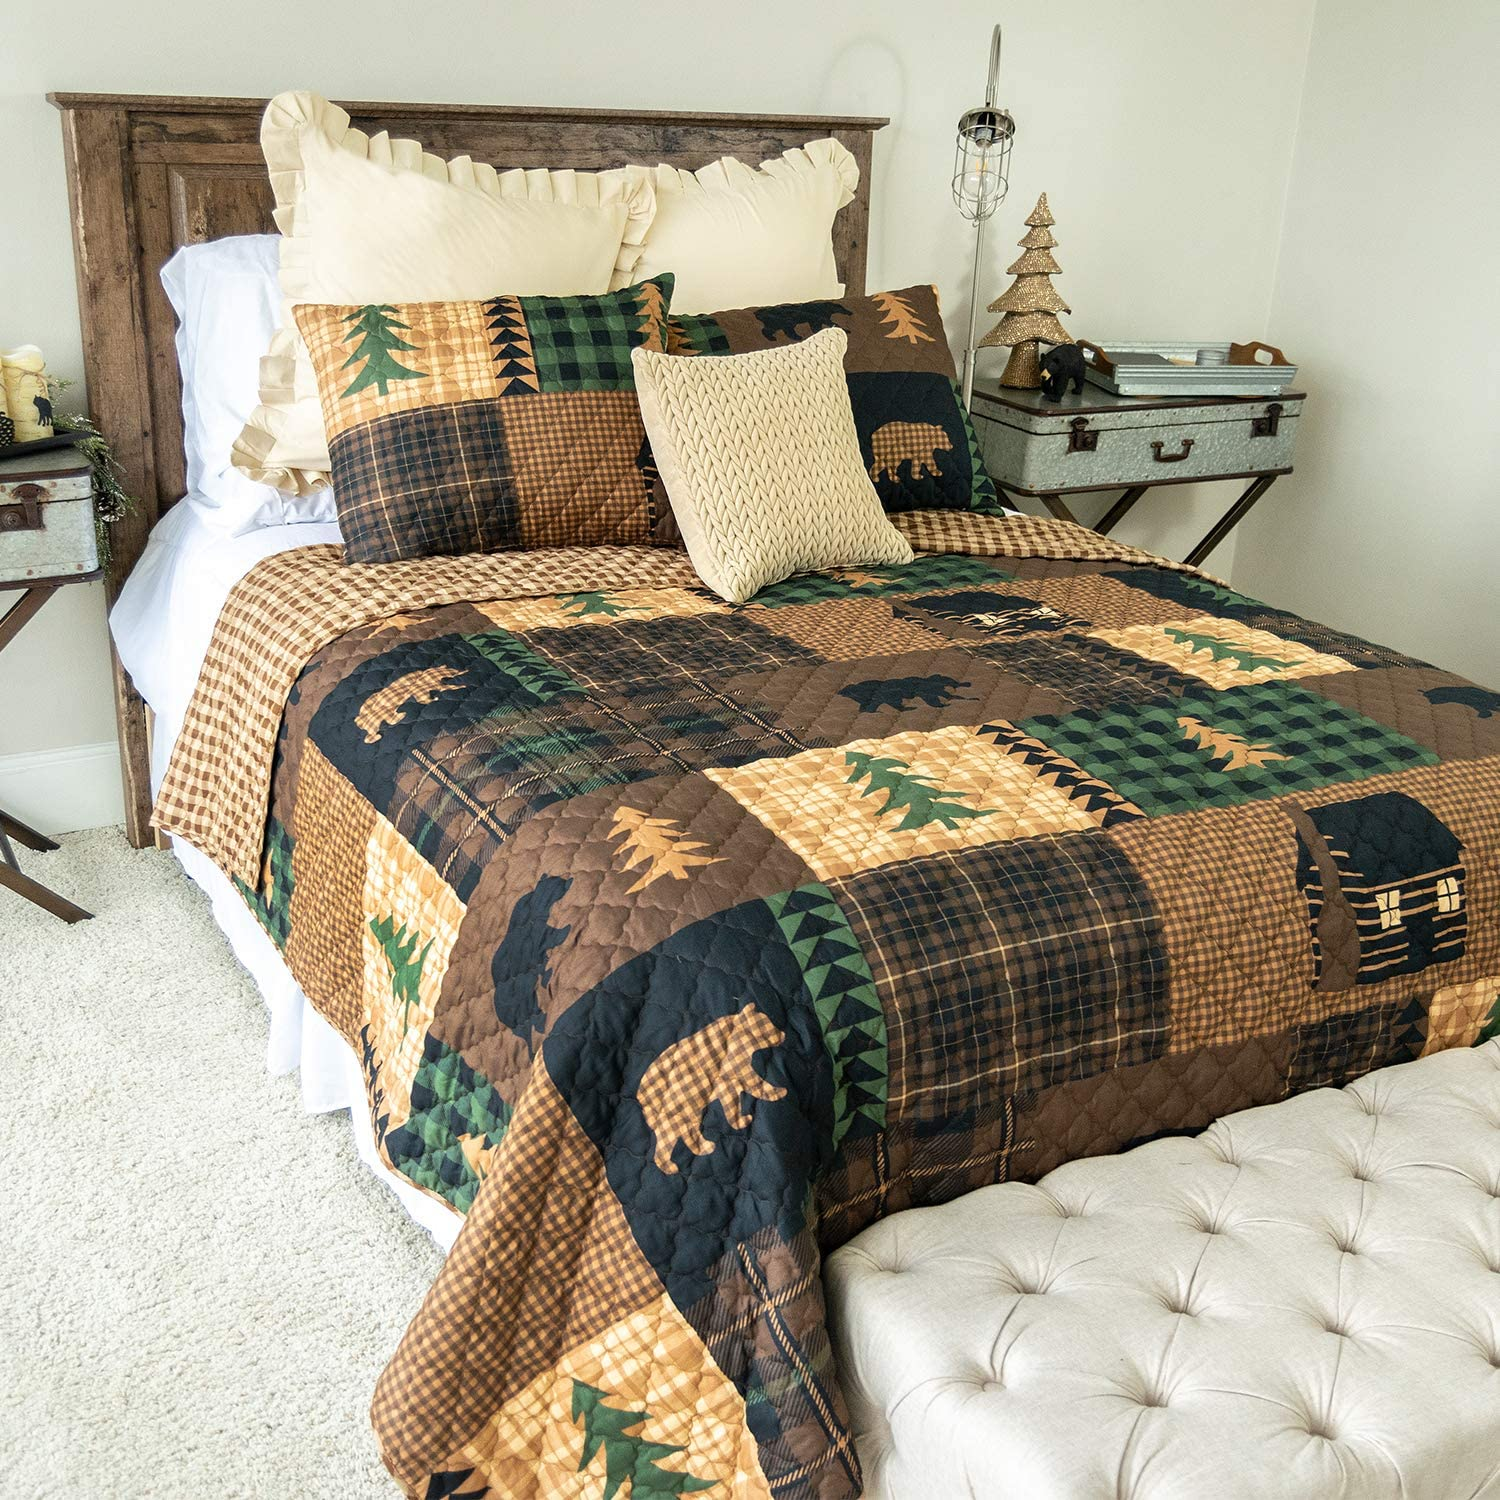 King Bedding Set - 3 Piece - Brown Bear Cabin by Donna Sharp - Lodge Quilt Set with King Quilt and Two Standard Pillow Shams - Machine Washable